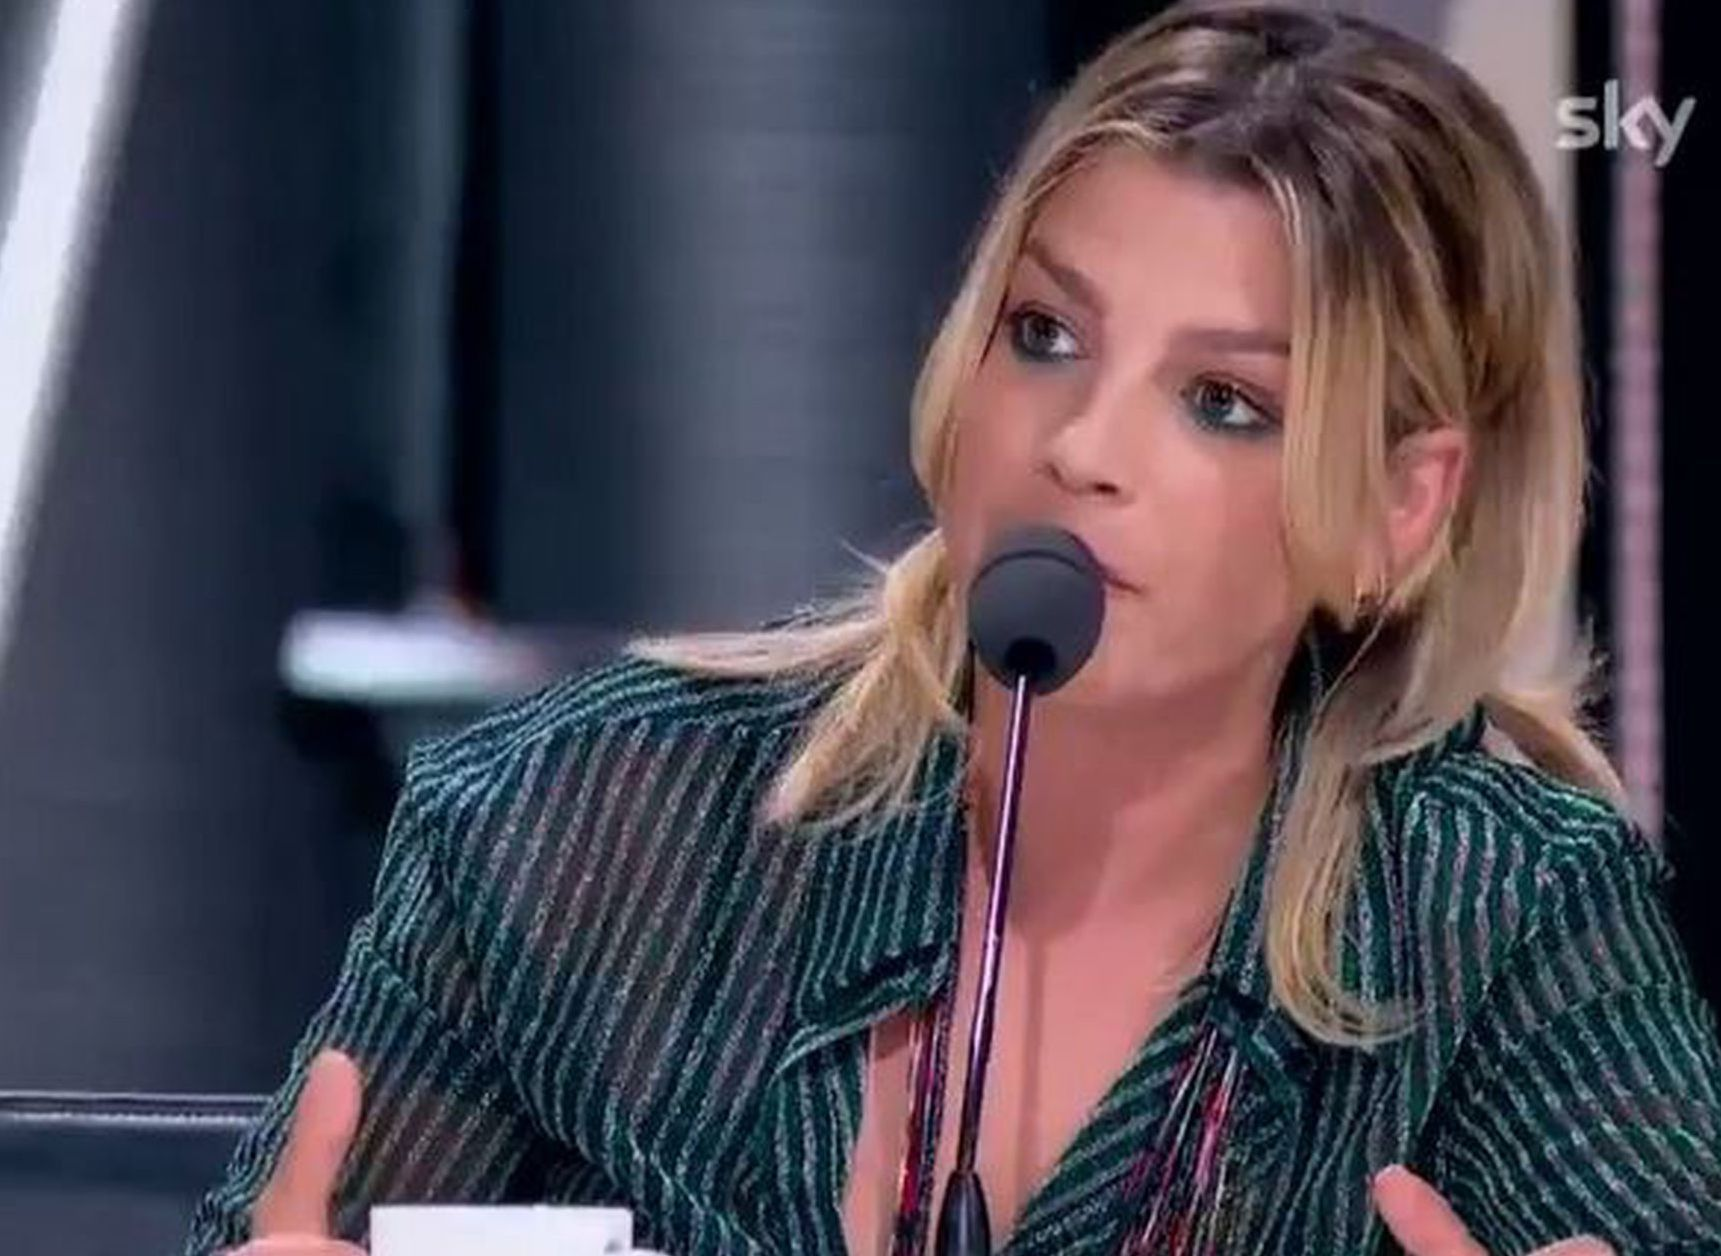 X Factor 2020: concorrente sbadiglia davanti ai giudici, Emma sbotta (VIDEO)